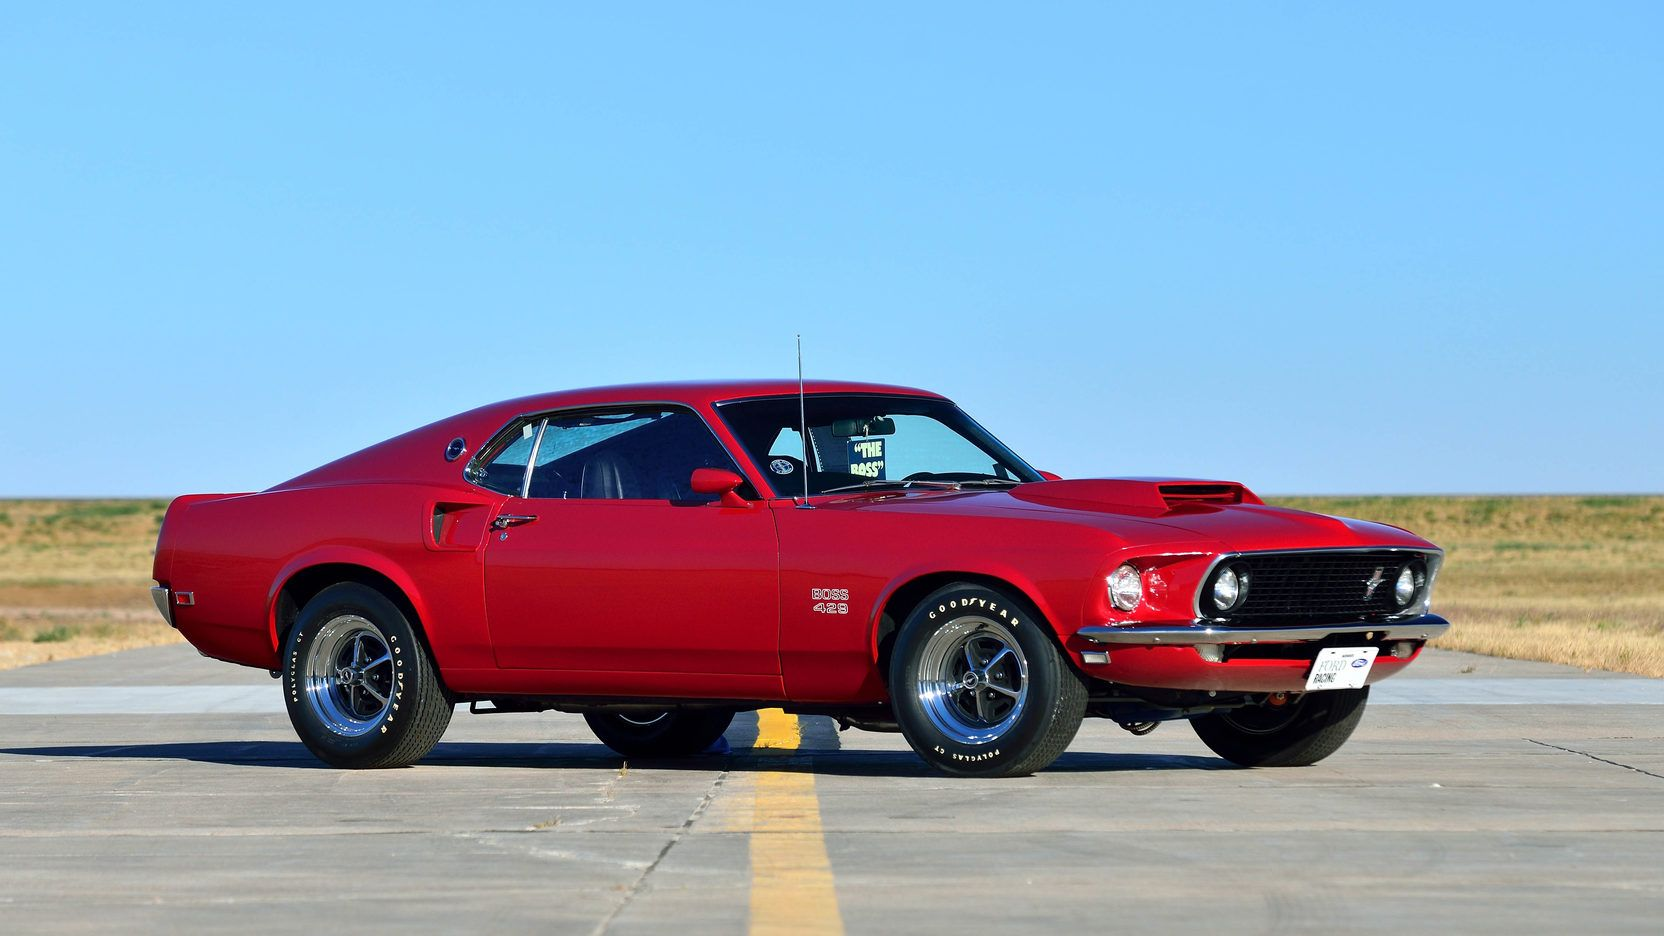 1969 Ford Mustang Boss 429 In Candy Apple Red Kk 1663 Ford